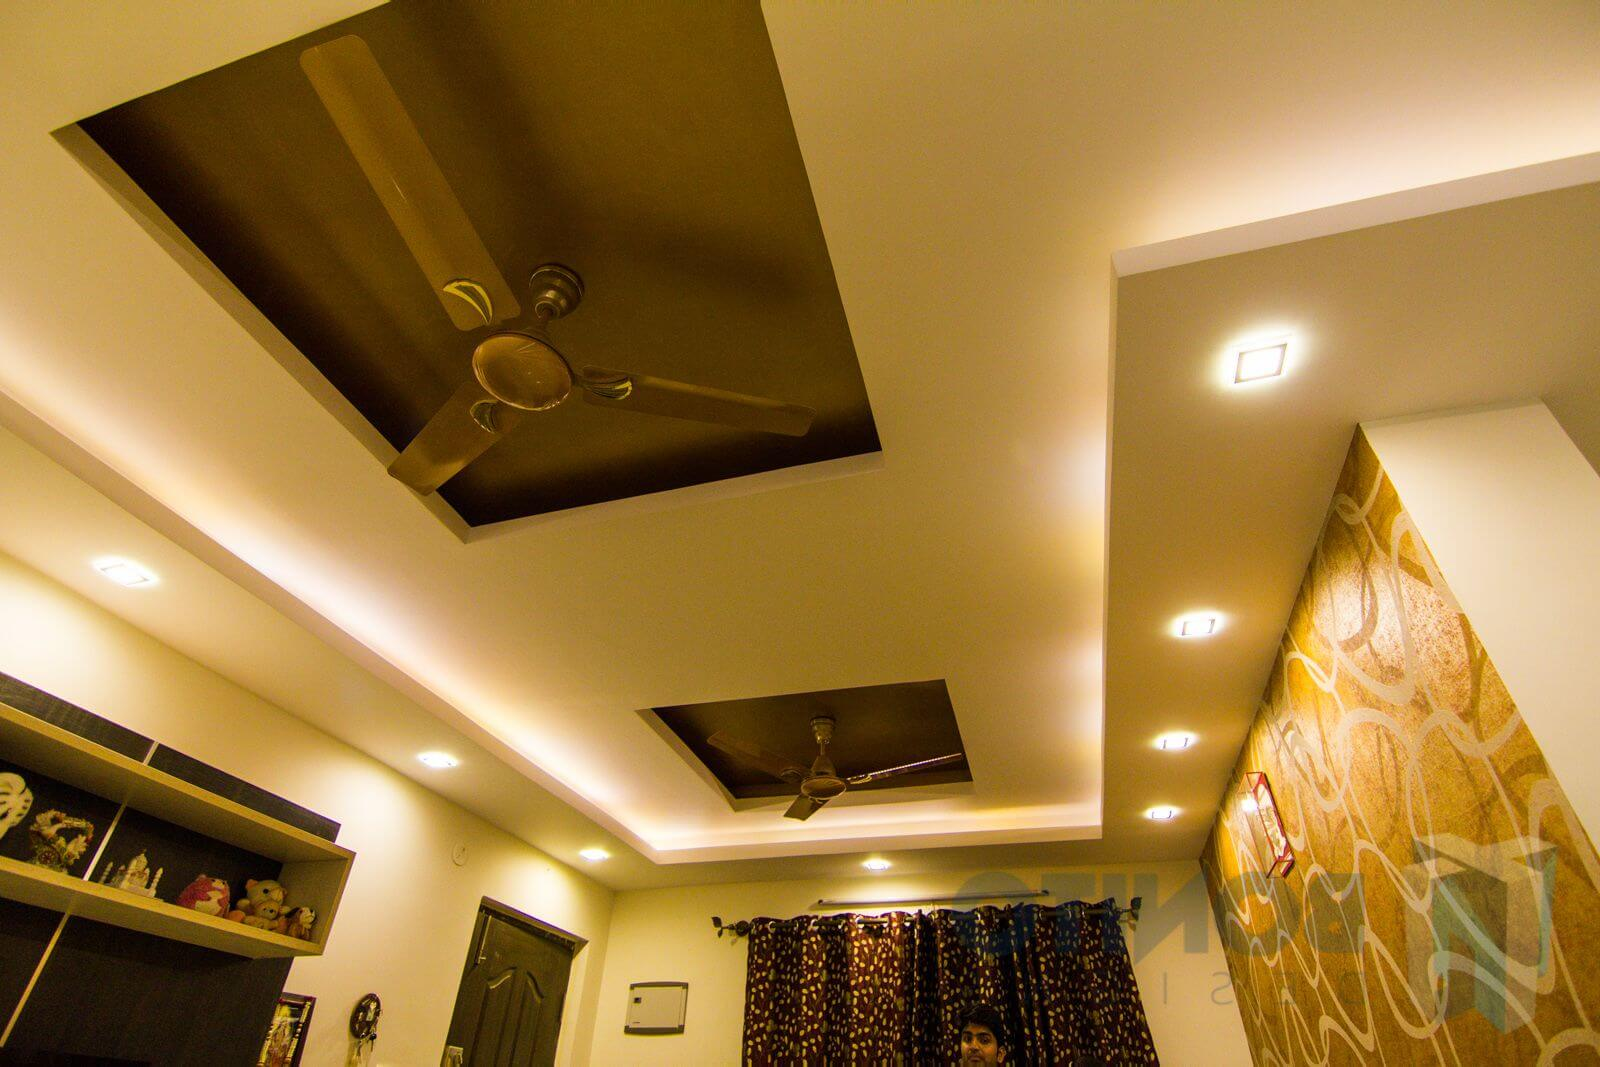 ome ceiling design